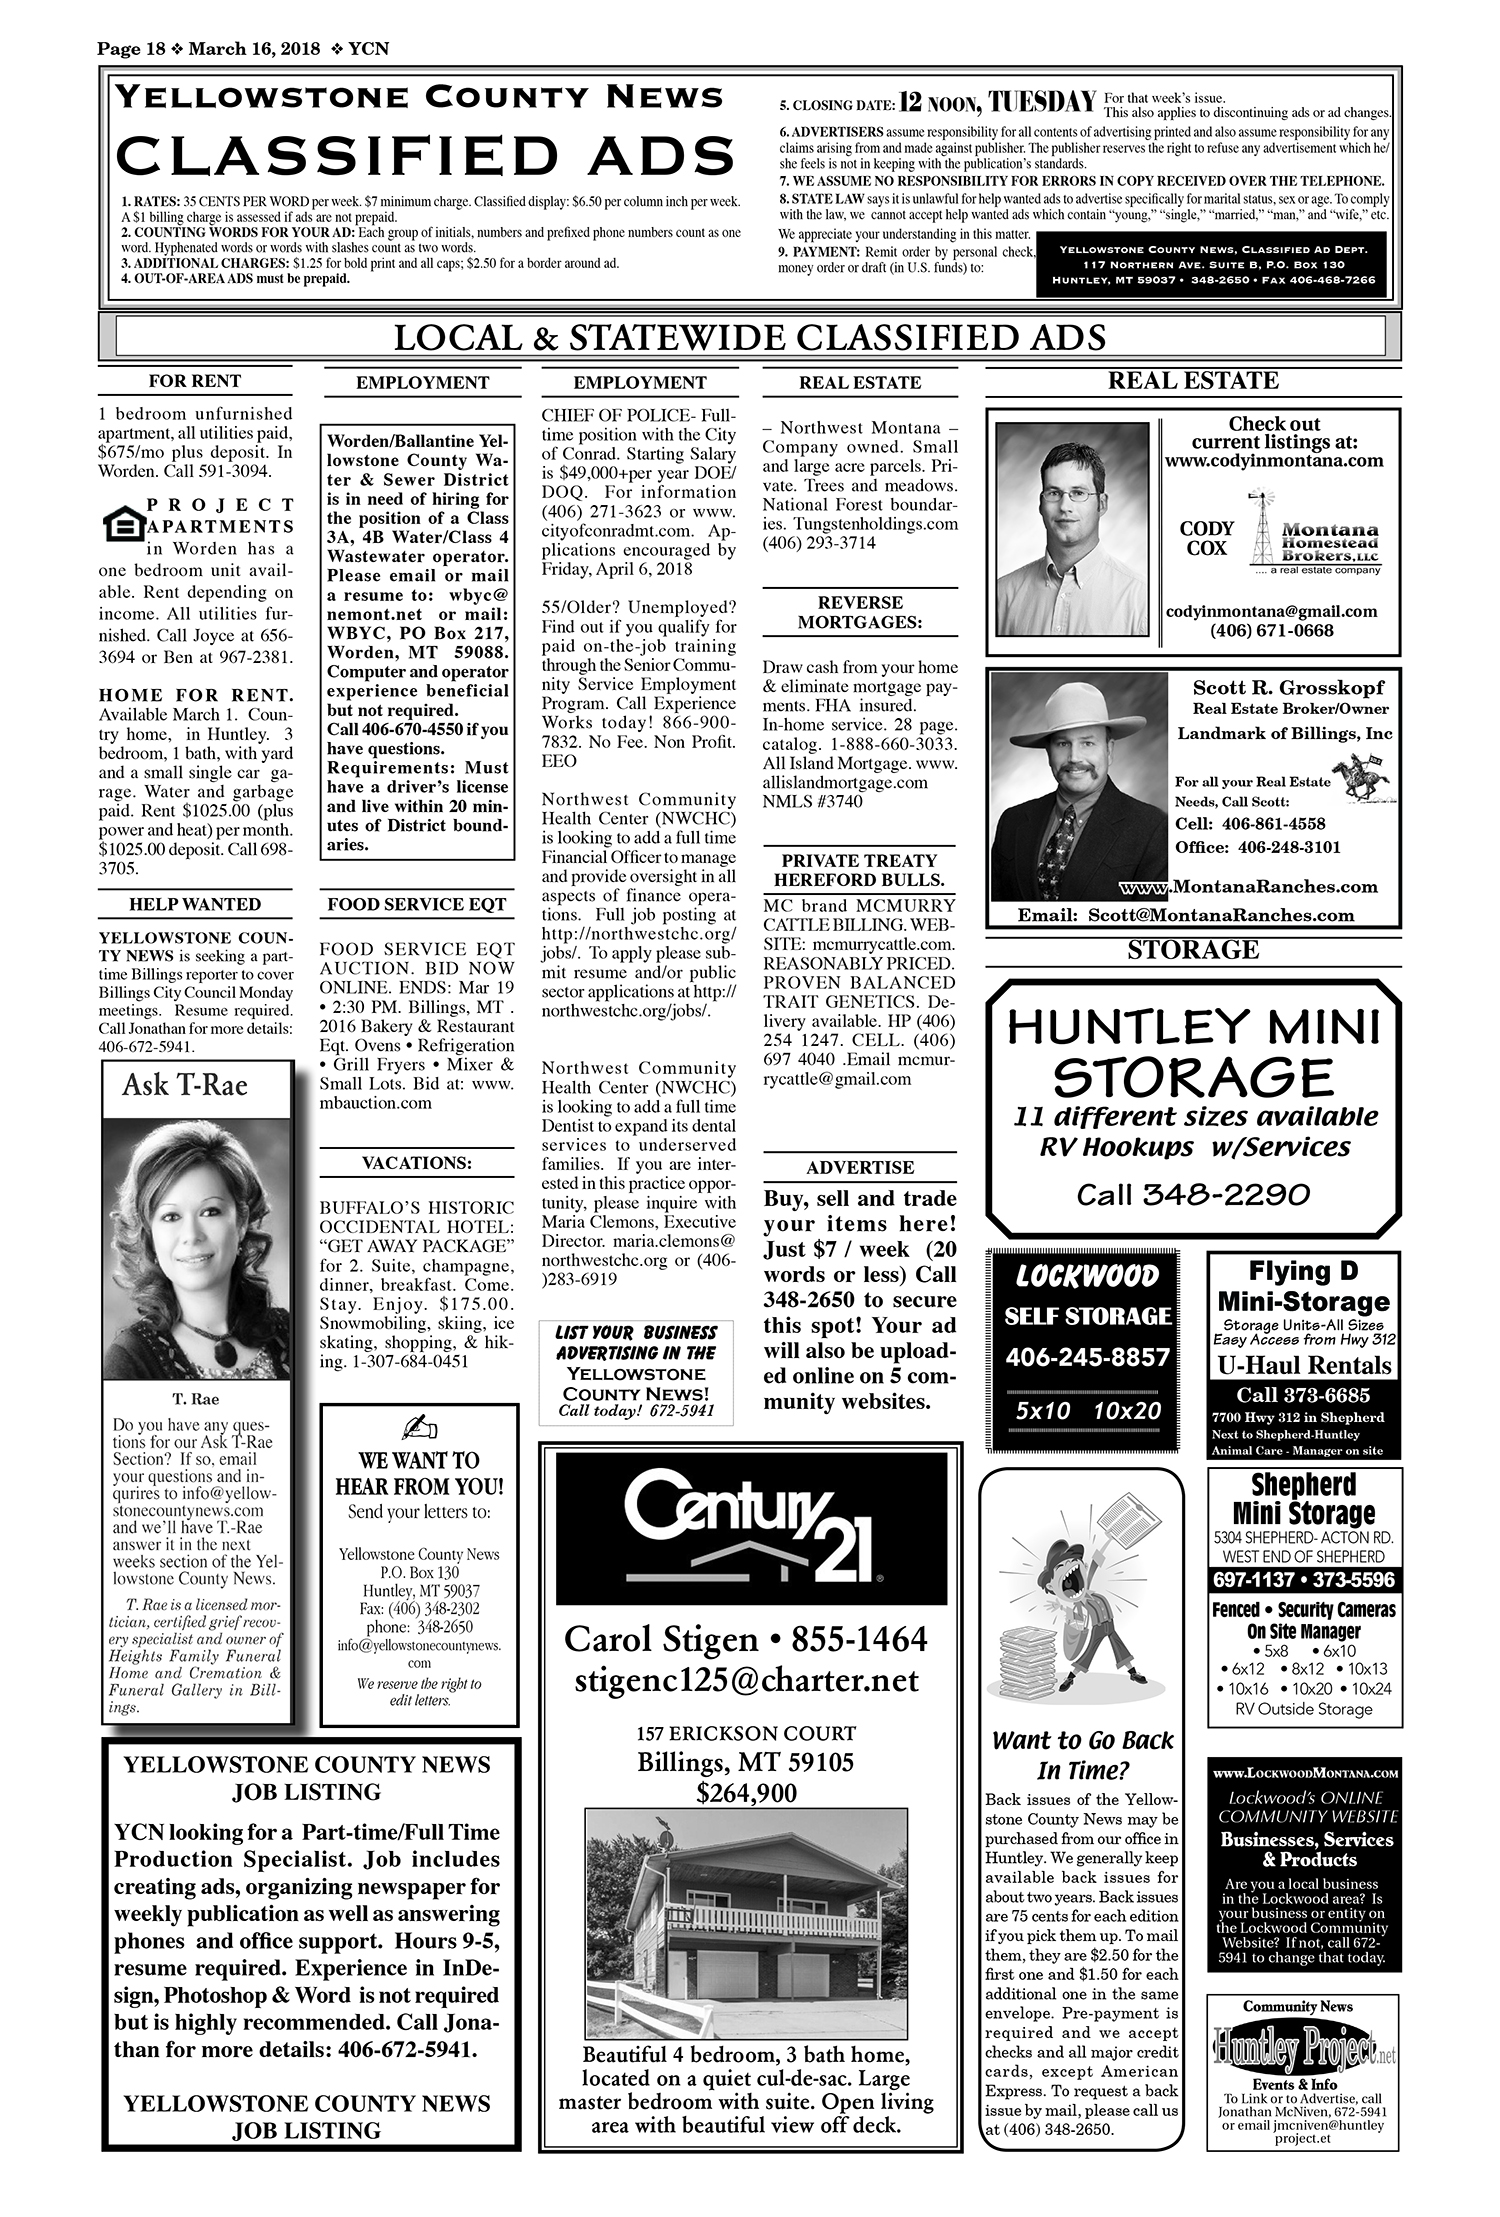 classifieds-18YCN03162018 | Yellowstone County News